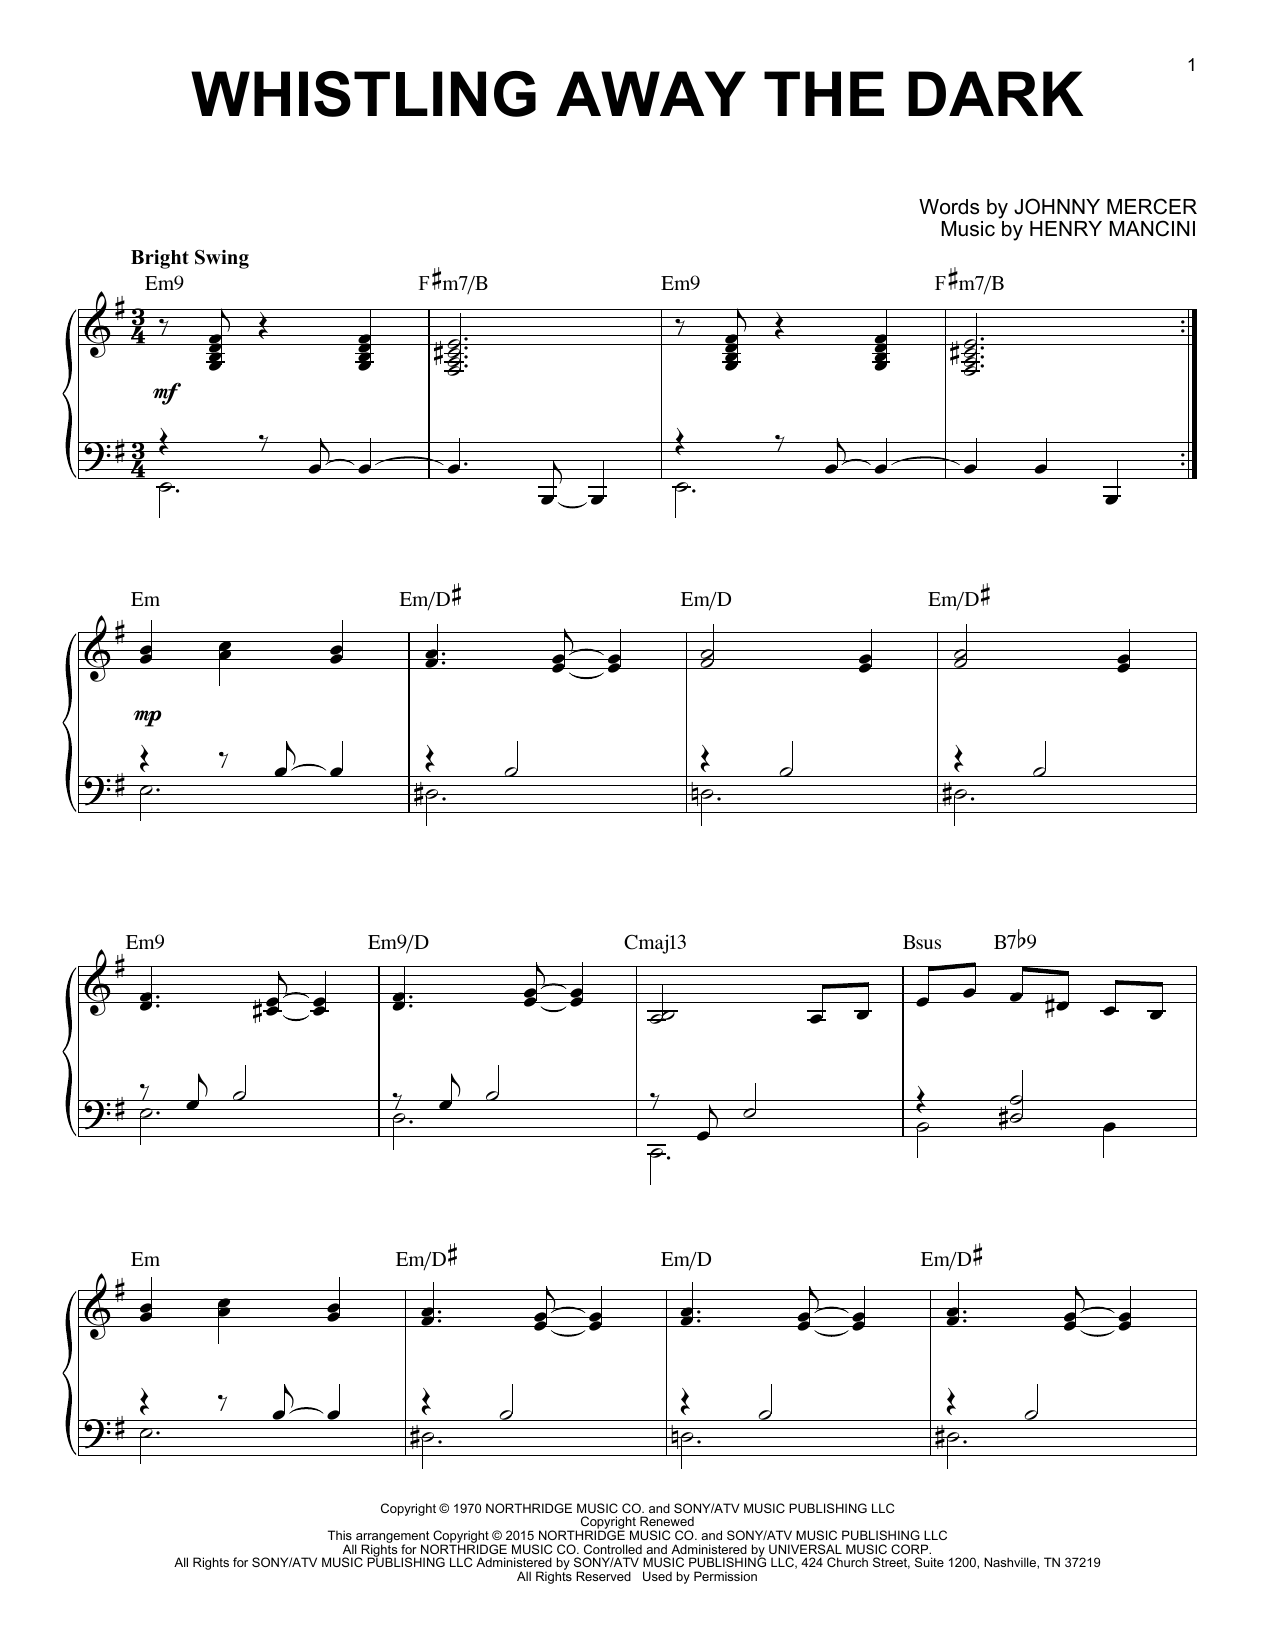 Henry Mancini Whistling Away The Dark [Jazz version] (arr. Brent Edstrom) sheet music notes and chords. Download Printable PDF.